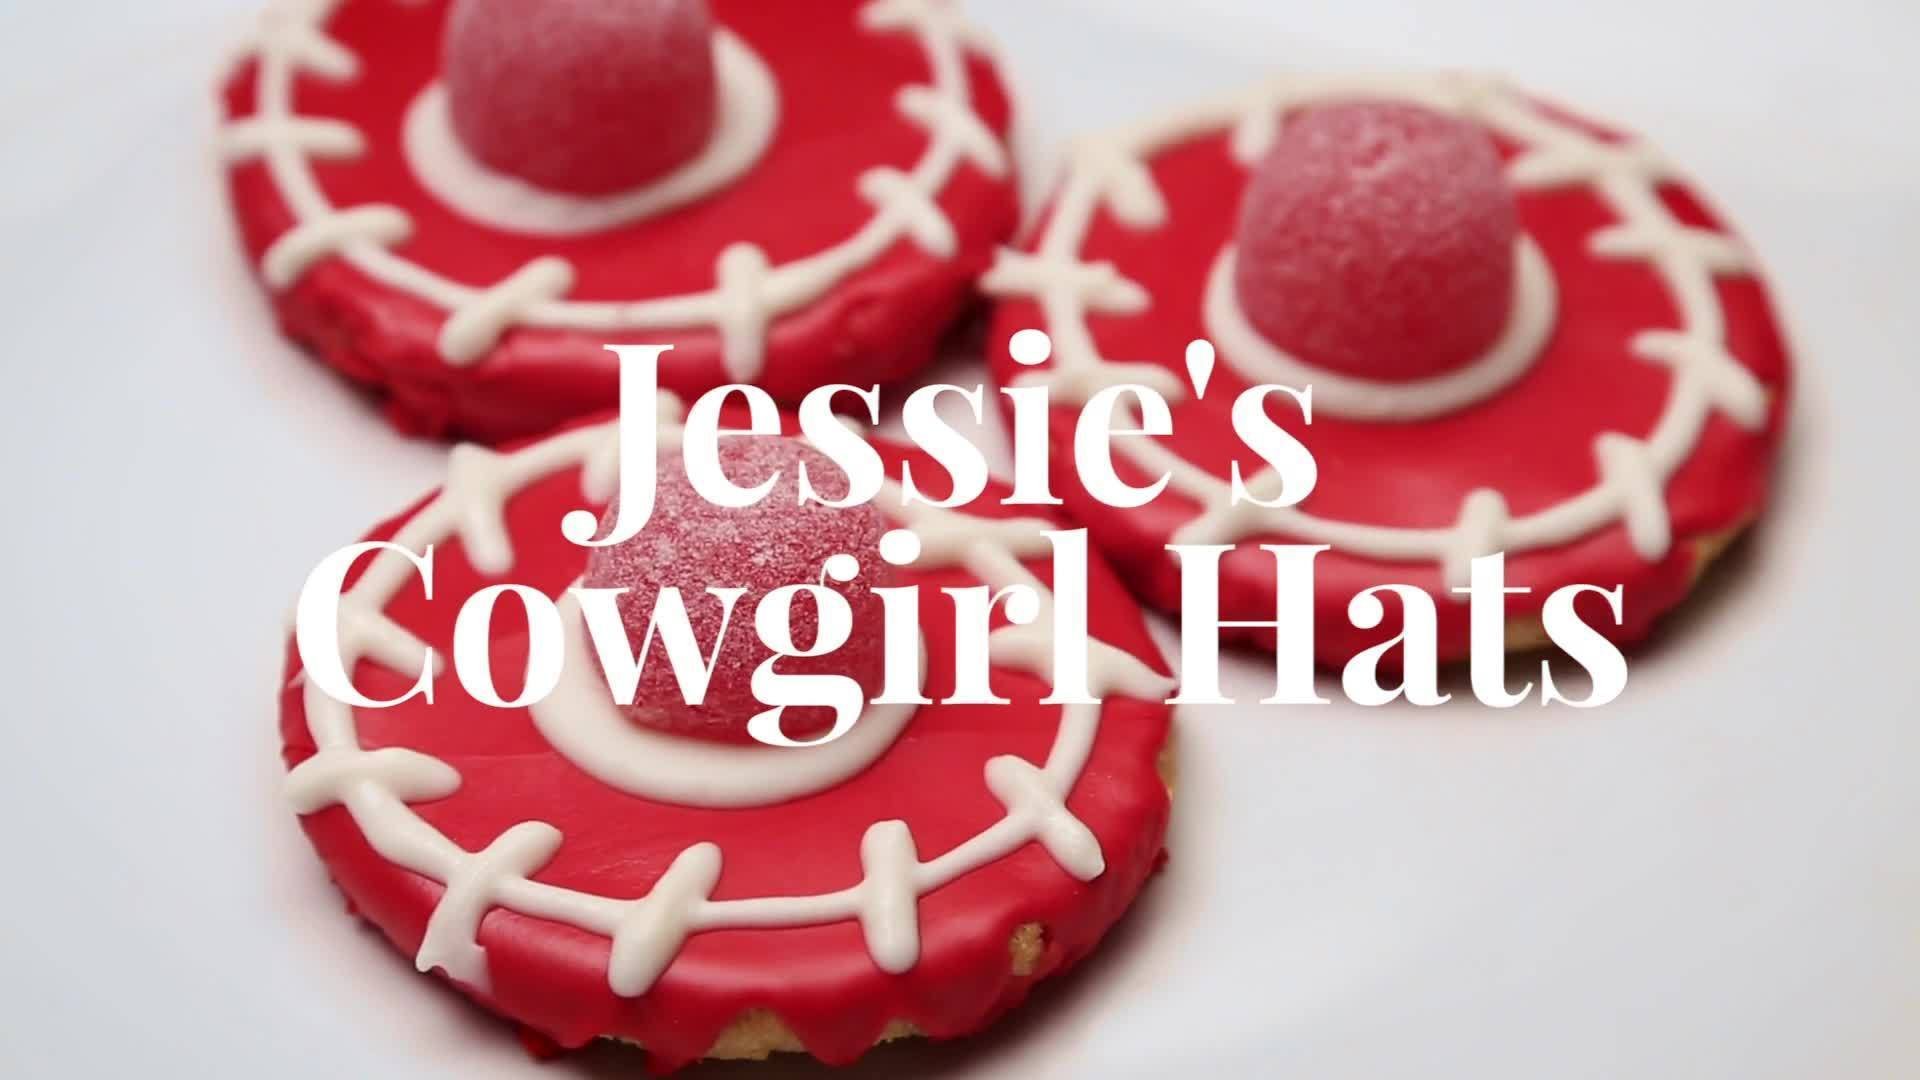 Jessie's Cowgirl Hat Cookies | Dishes by Disney